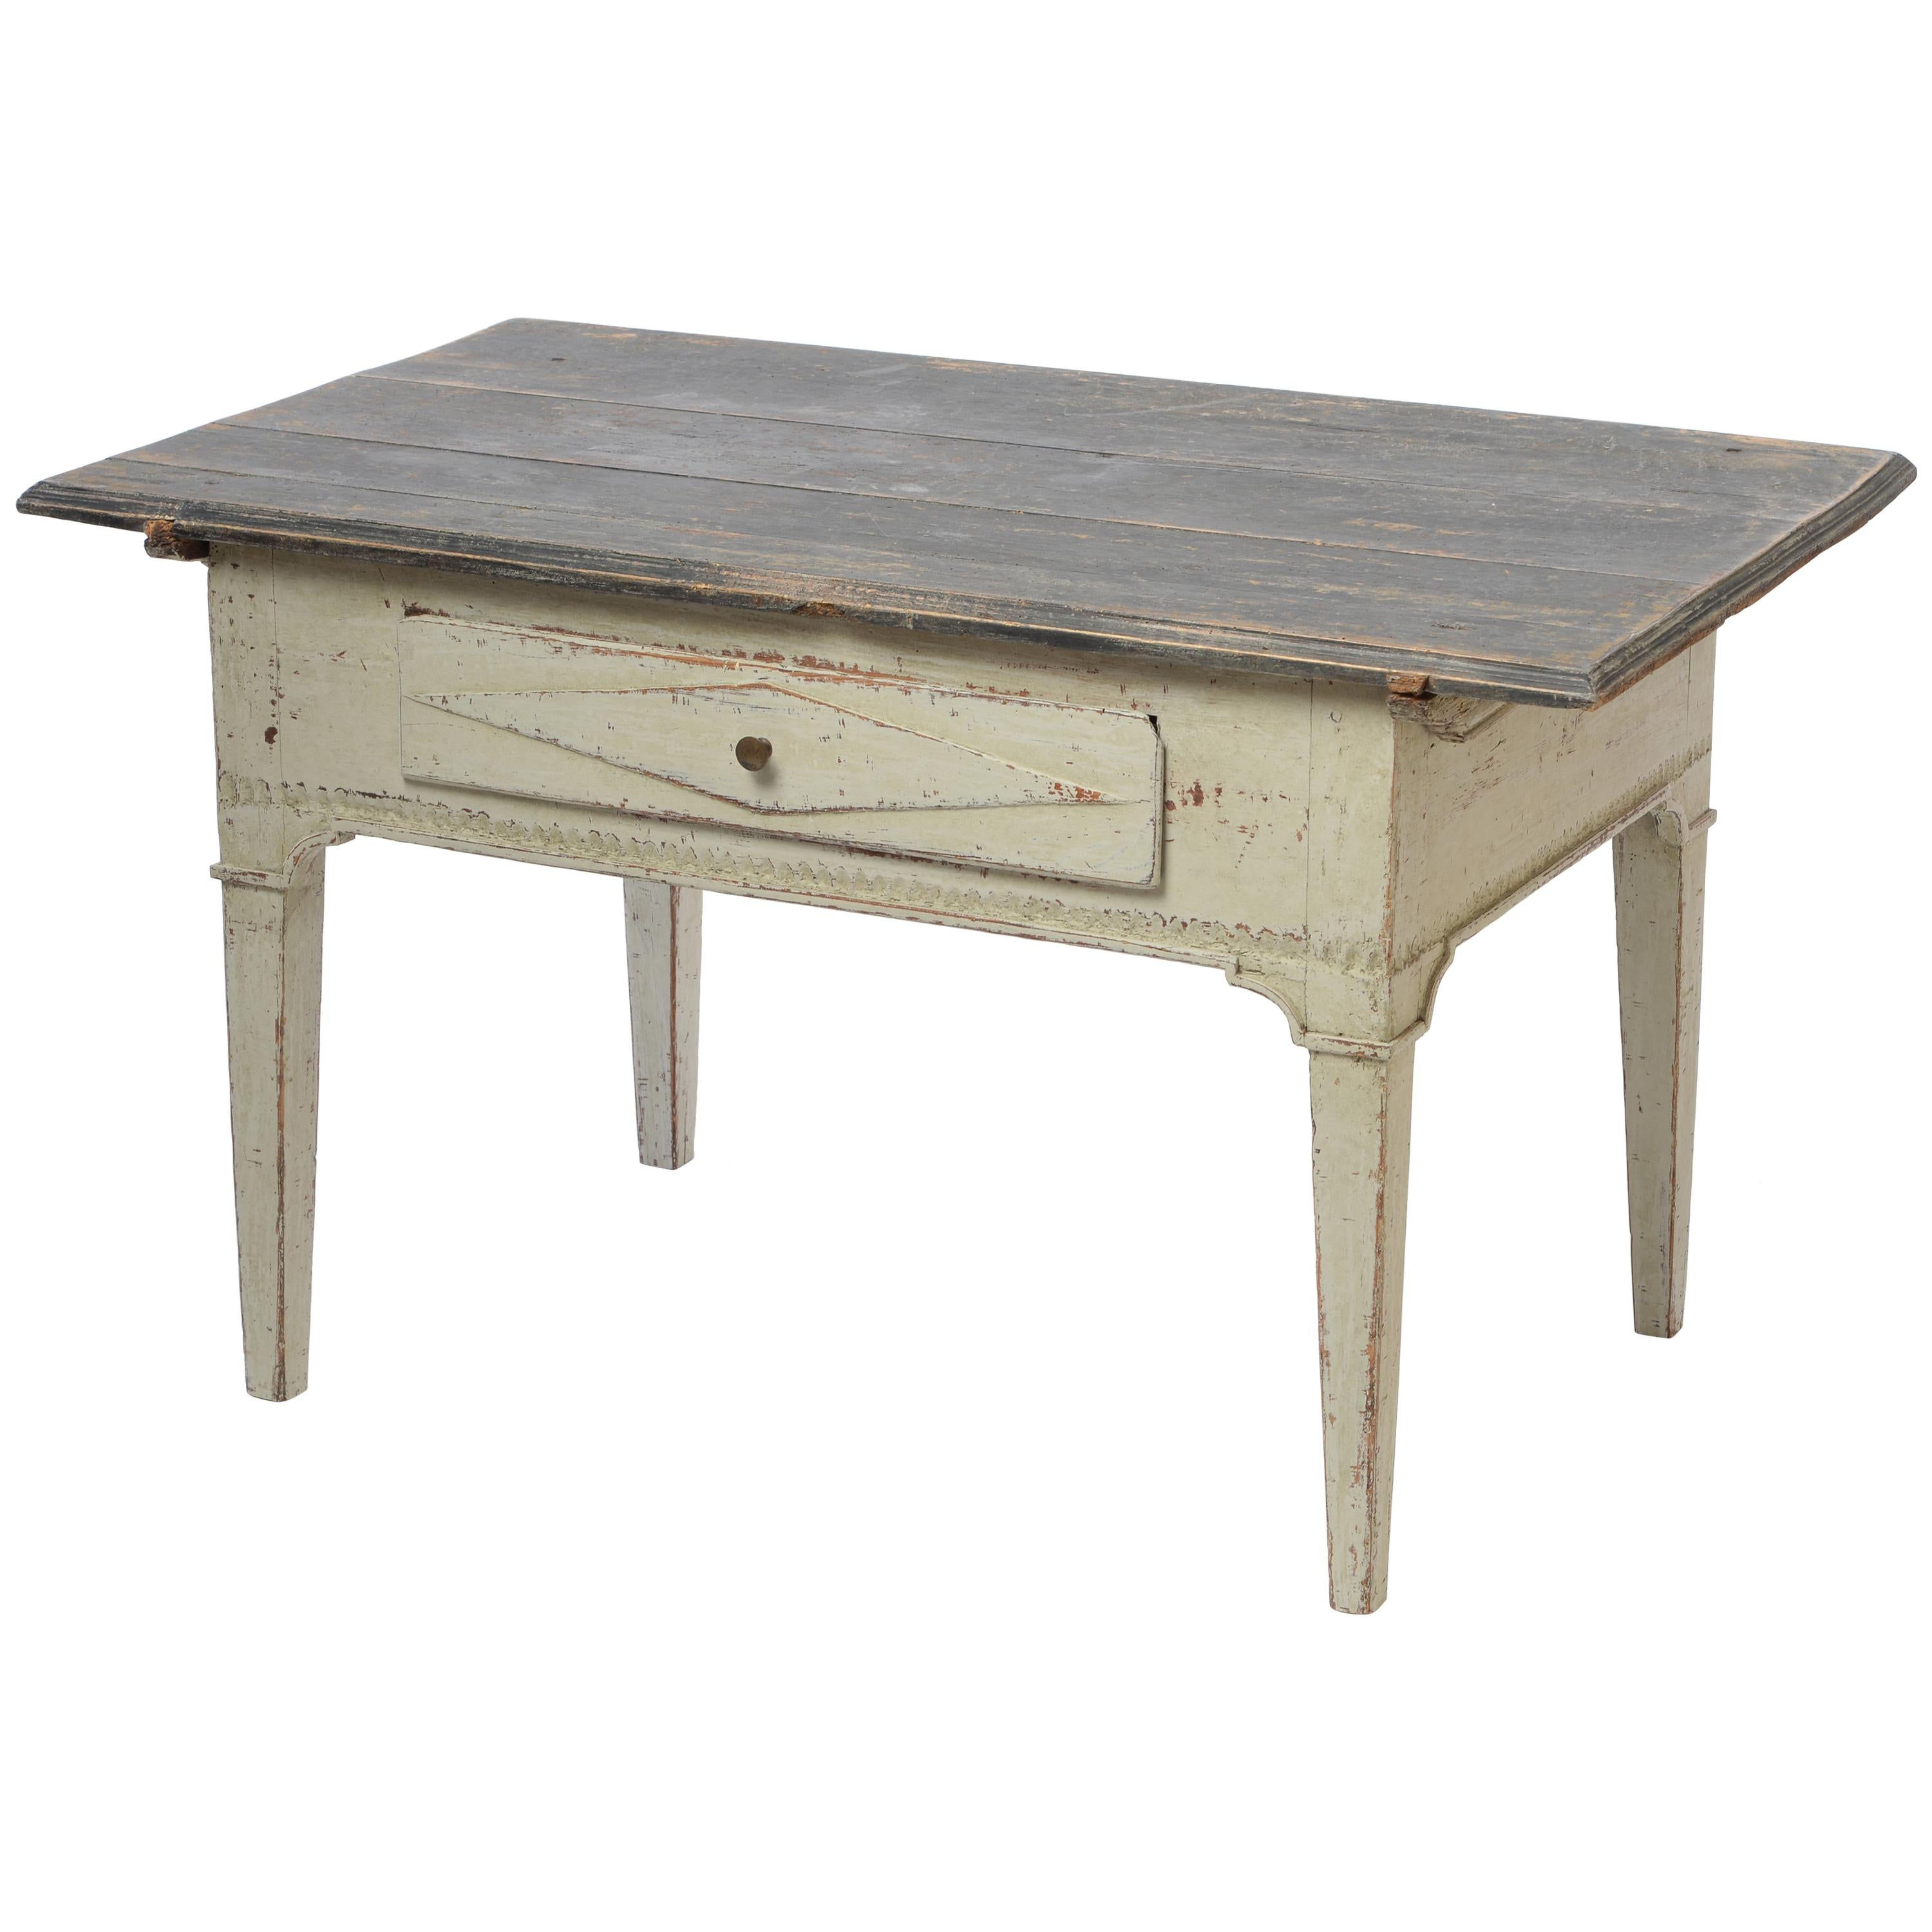 18th Century Gustavian Low Table